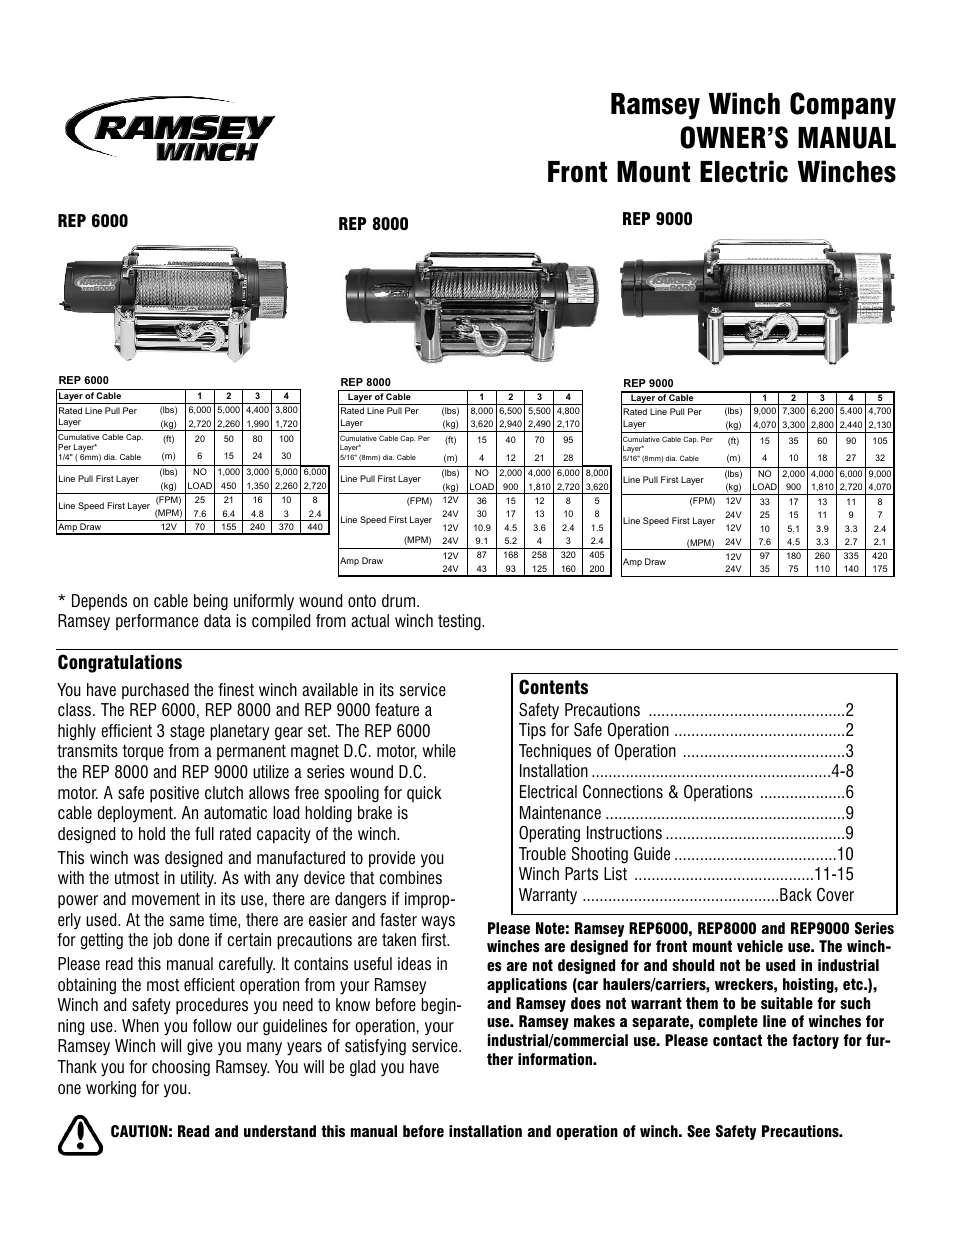 ramsey winch rep 6000_8000_9000 current page1?resize=665%2C861 ramsey winch solenoid wiring diagram double 4 wire solenoid 4 wheeler winch wiring diagram at aneh.co